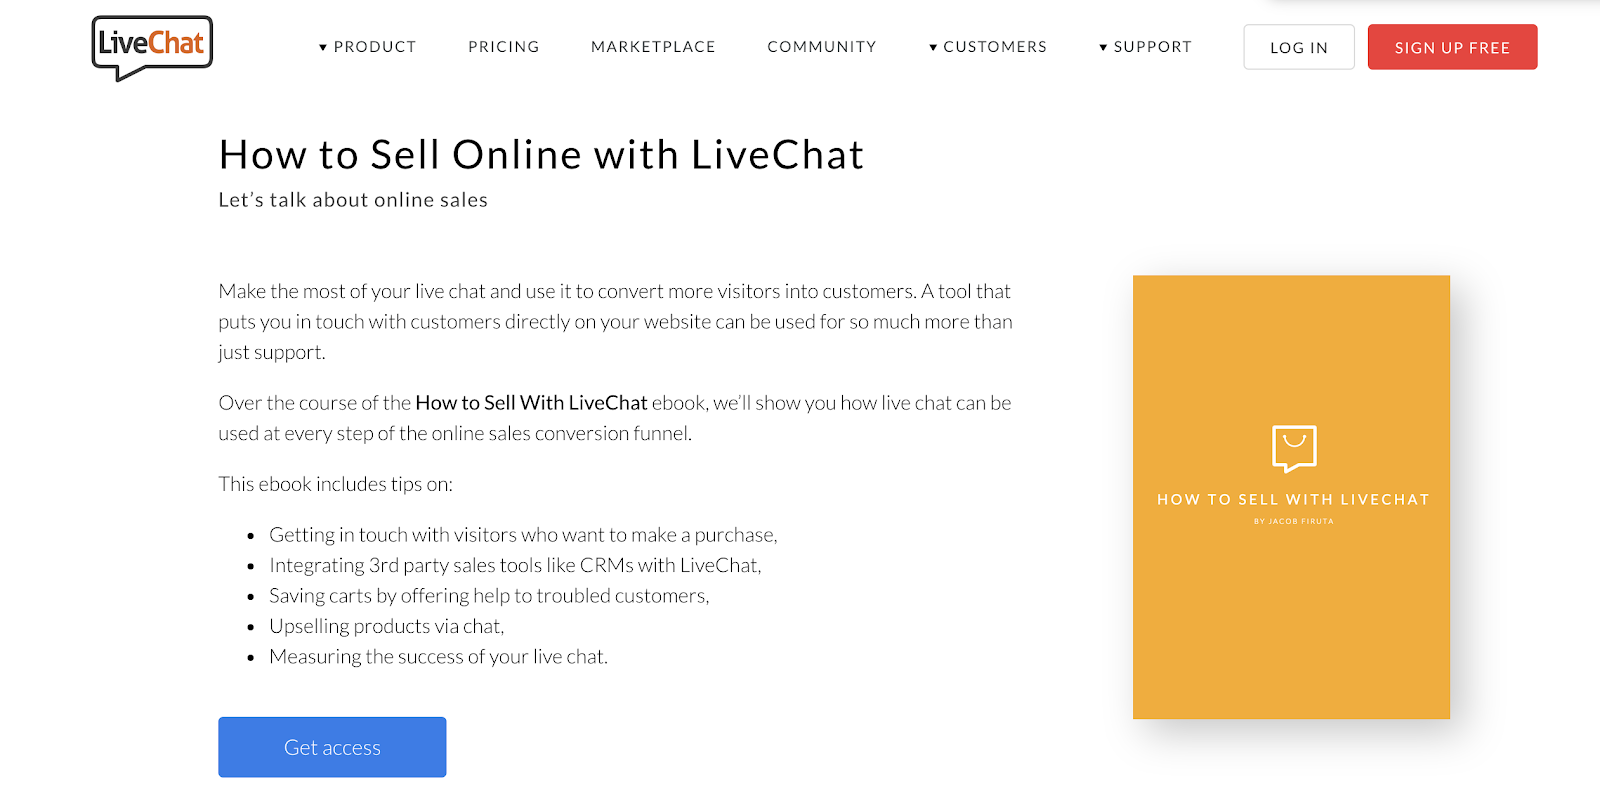 livechat sales enablement ebook example